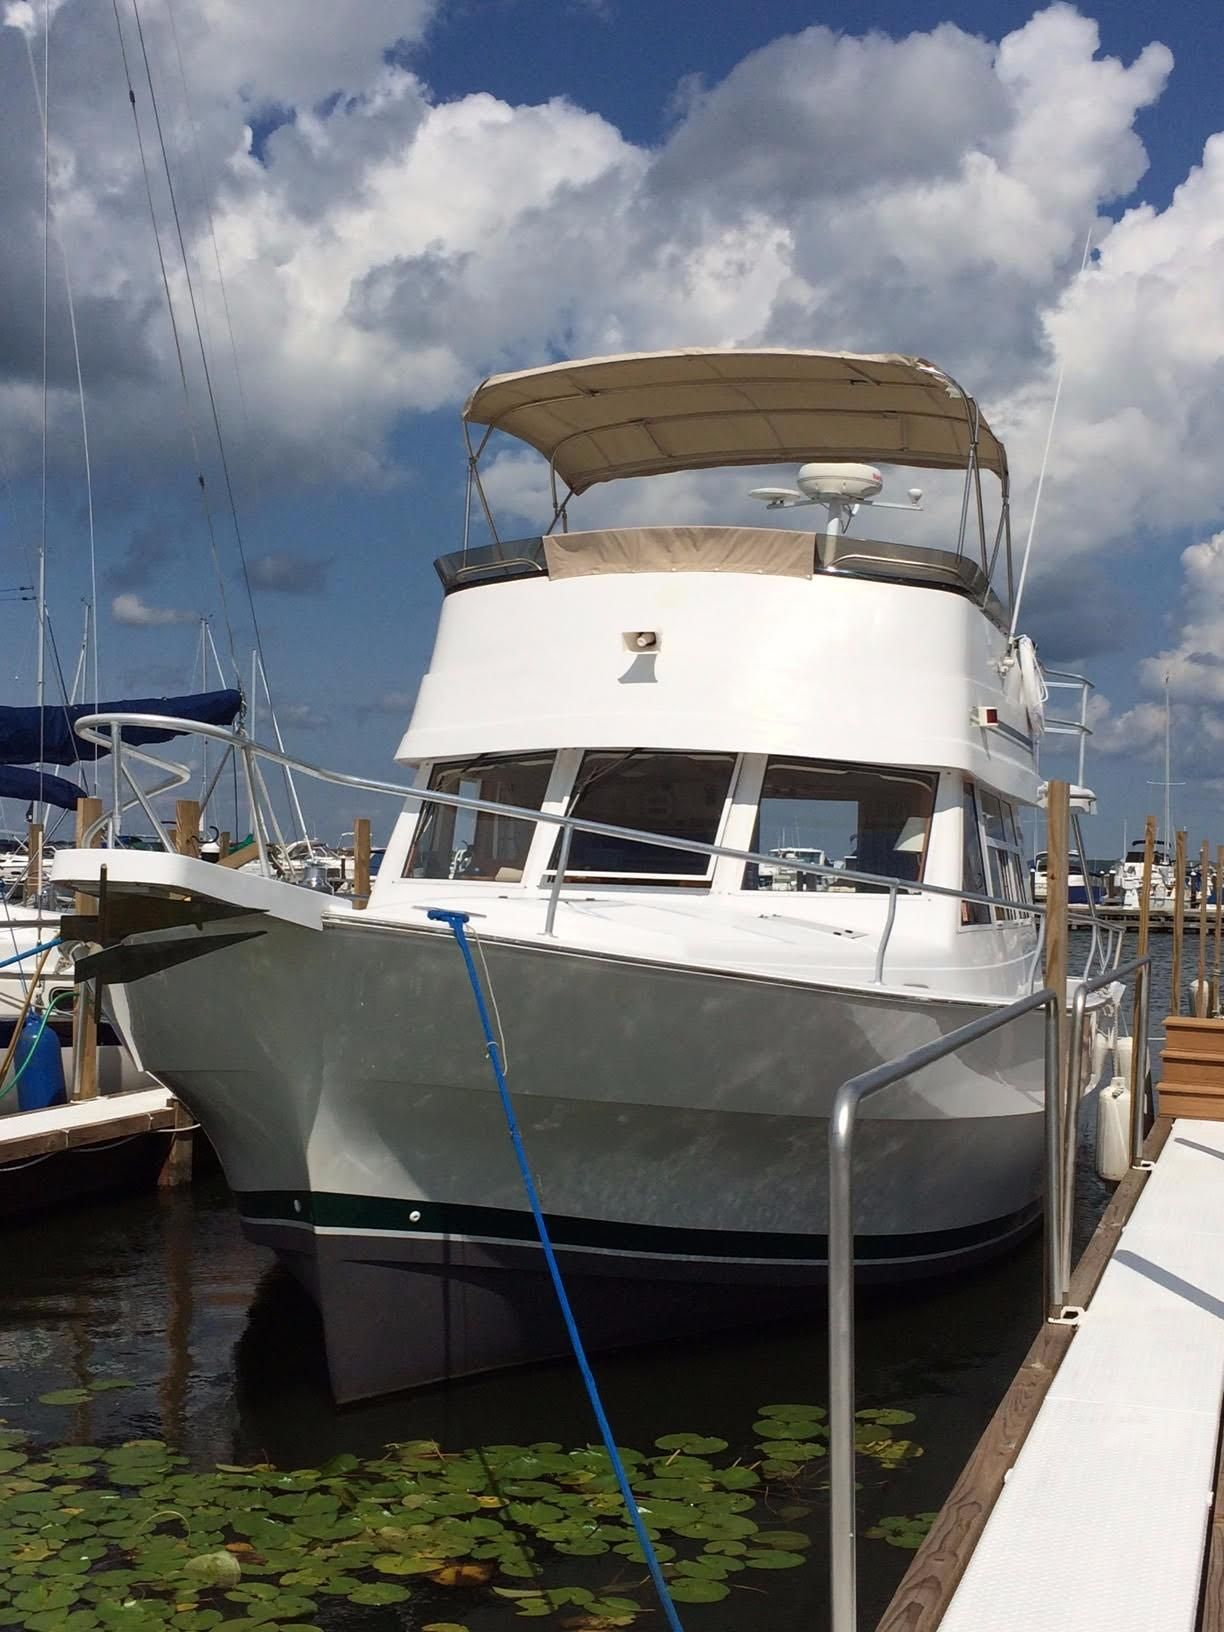 1999 Mainship 390 Erie, Pennsylvania - Bay Marine